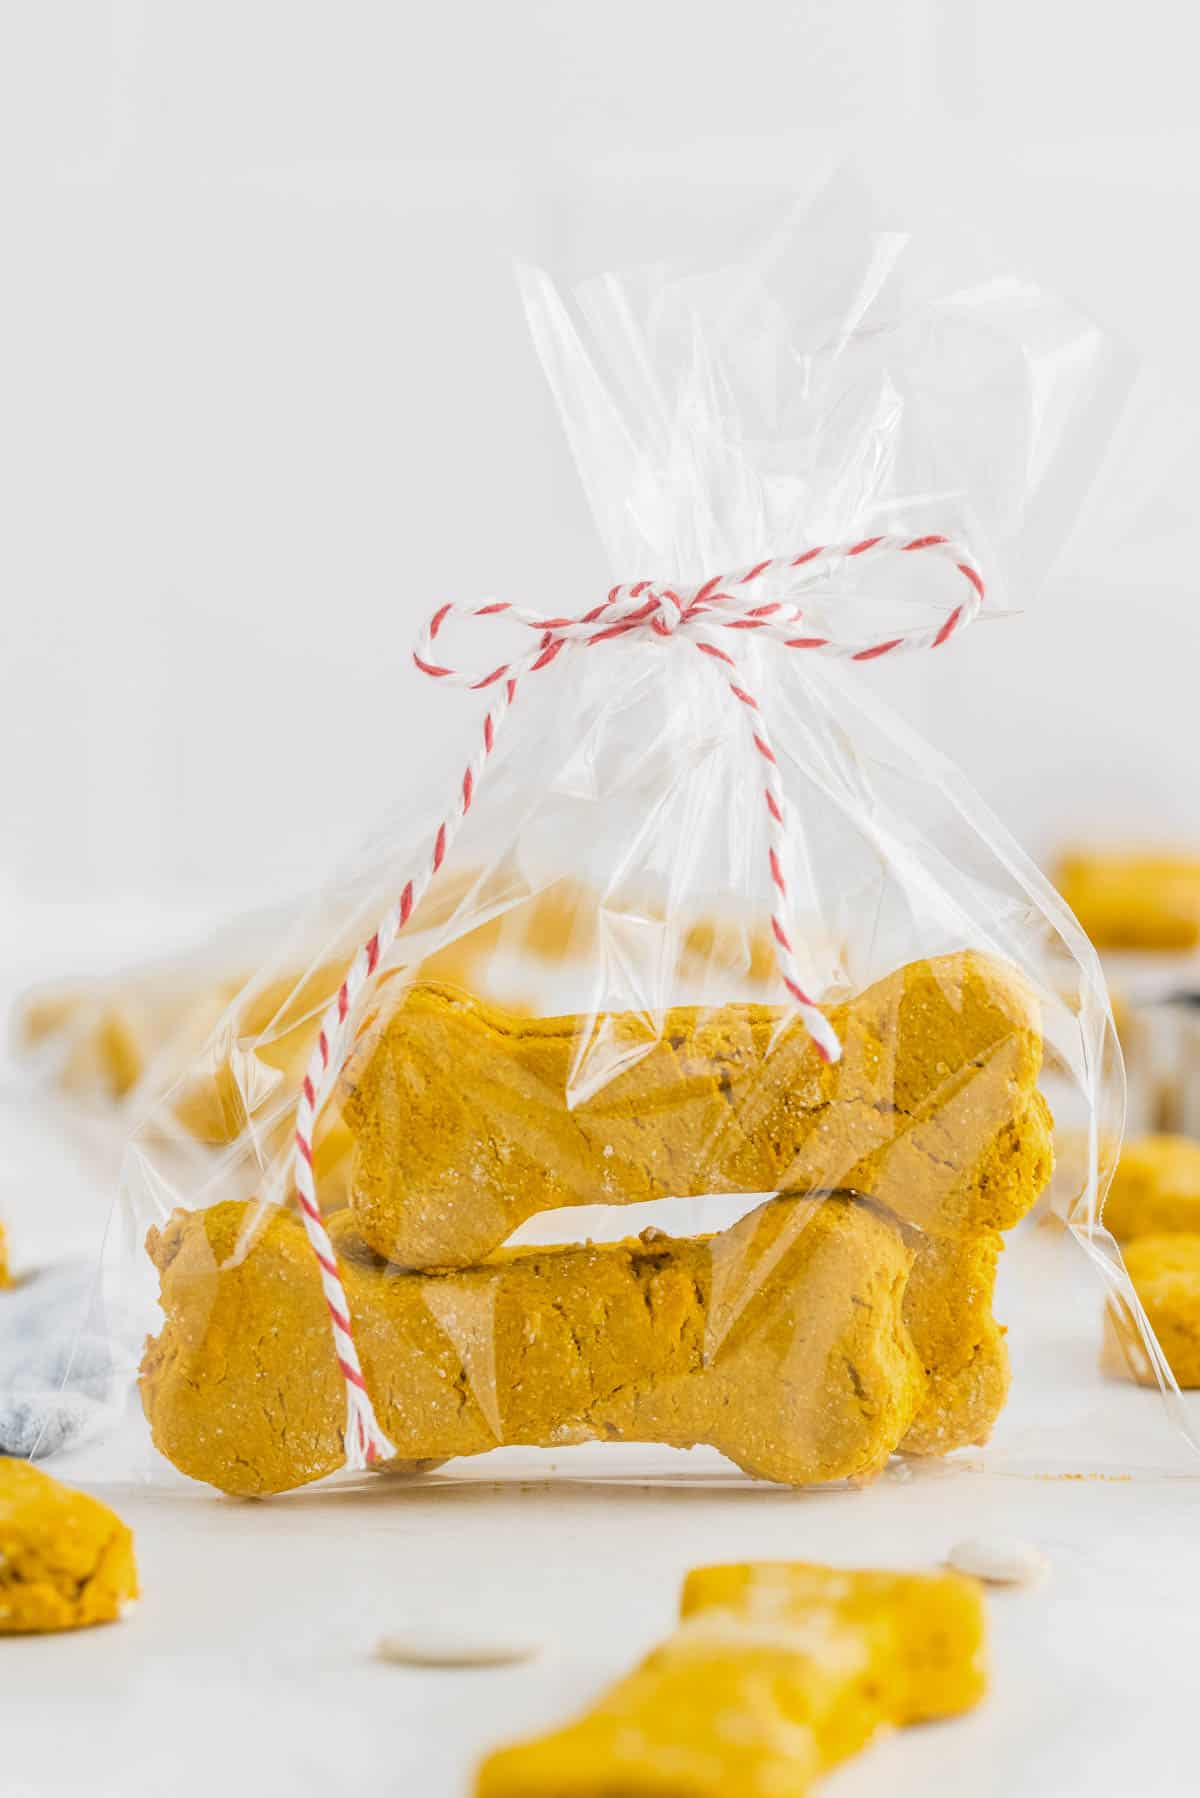 dog treats packaged up in a bag